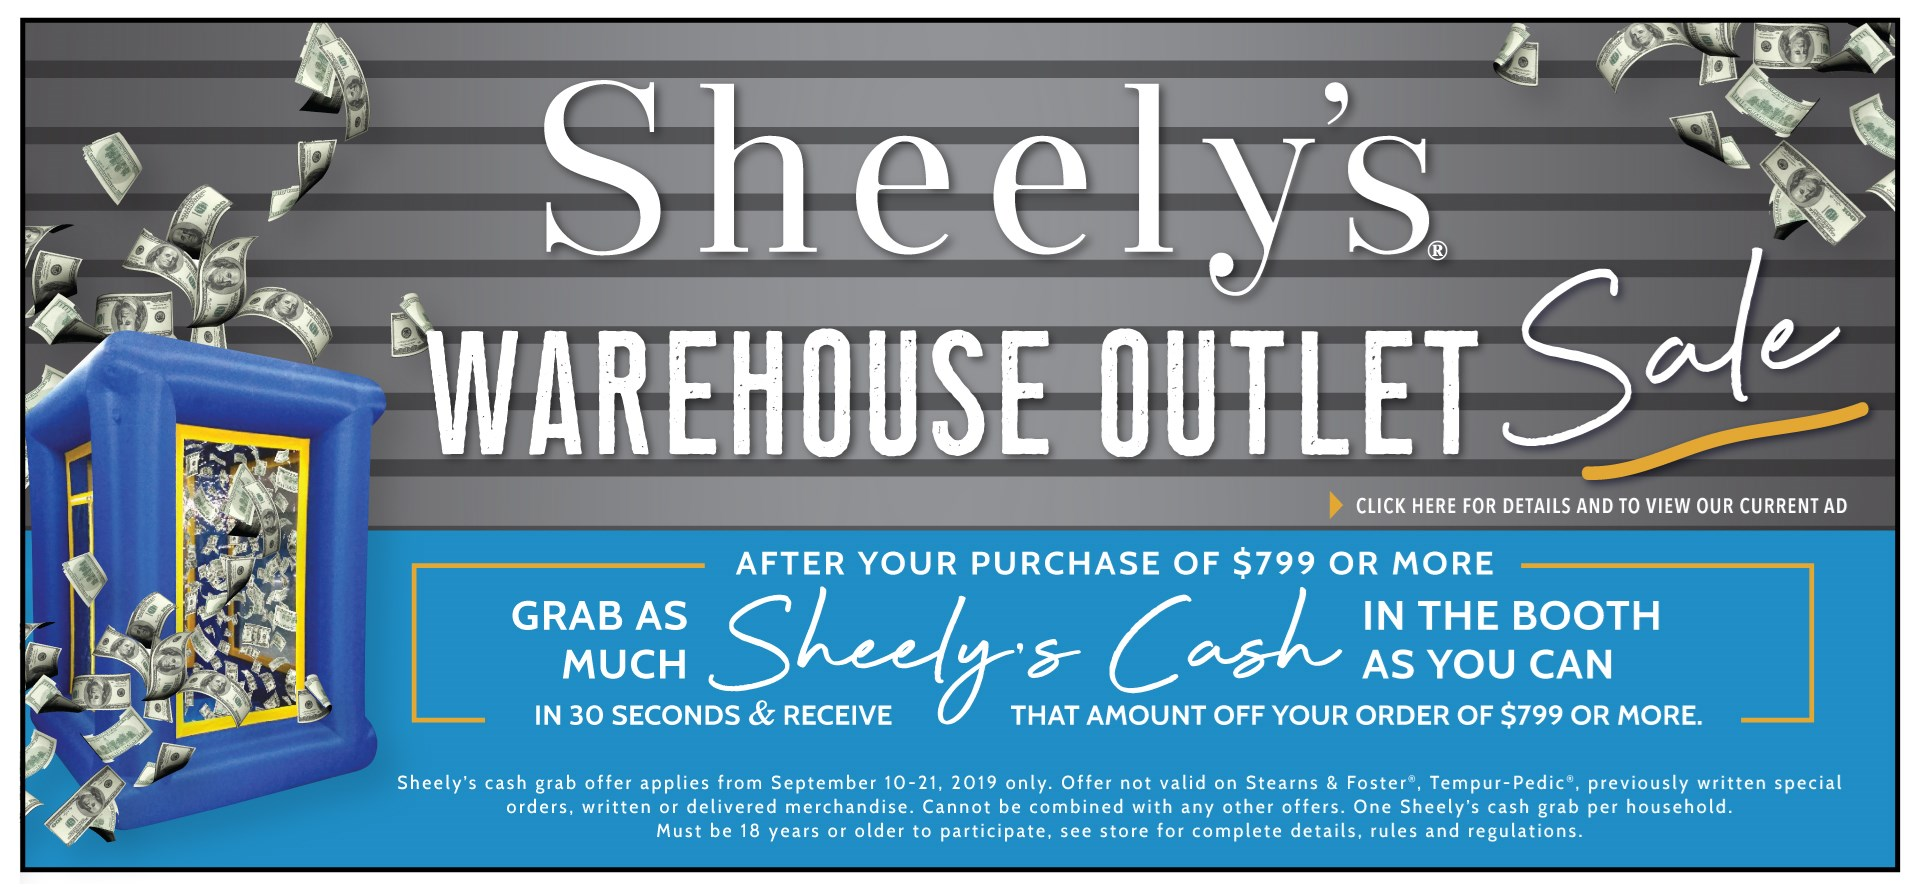 Warehouse Outlet Sale SEP 2019 1